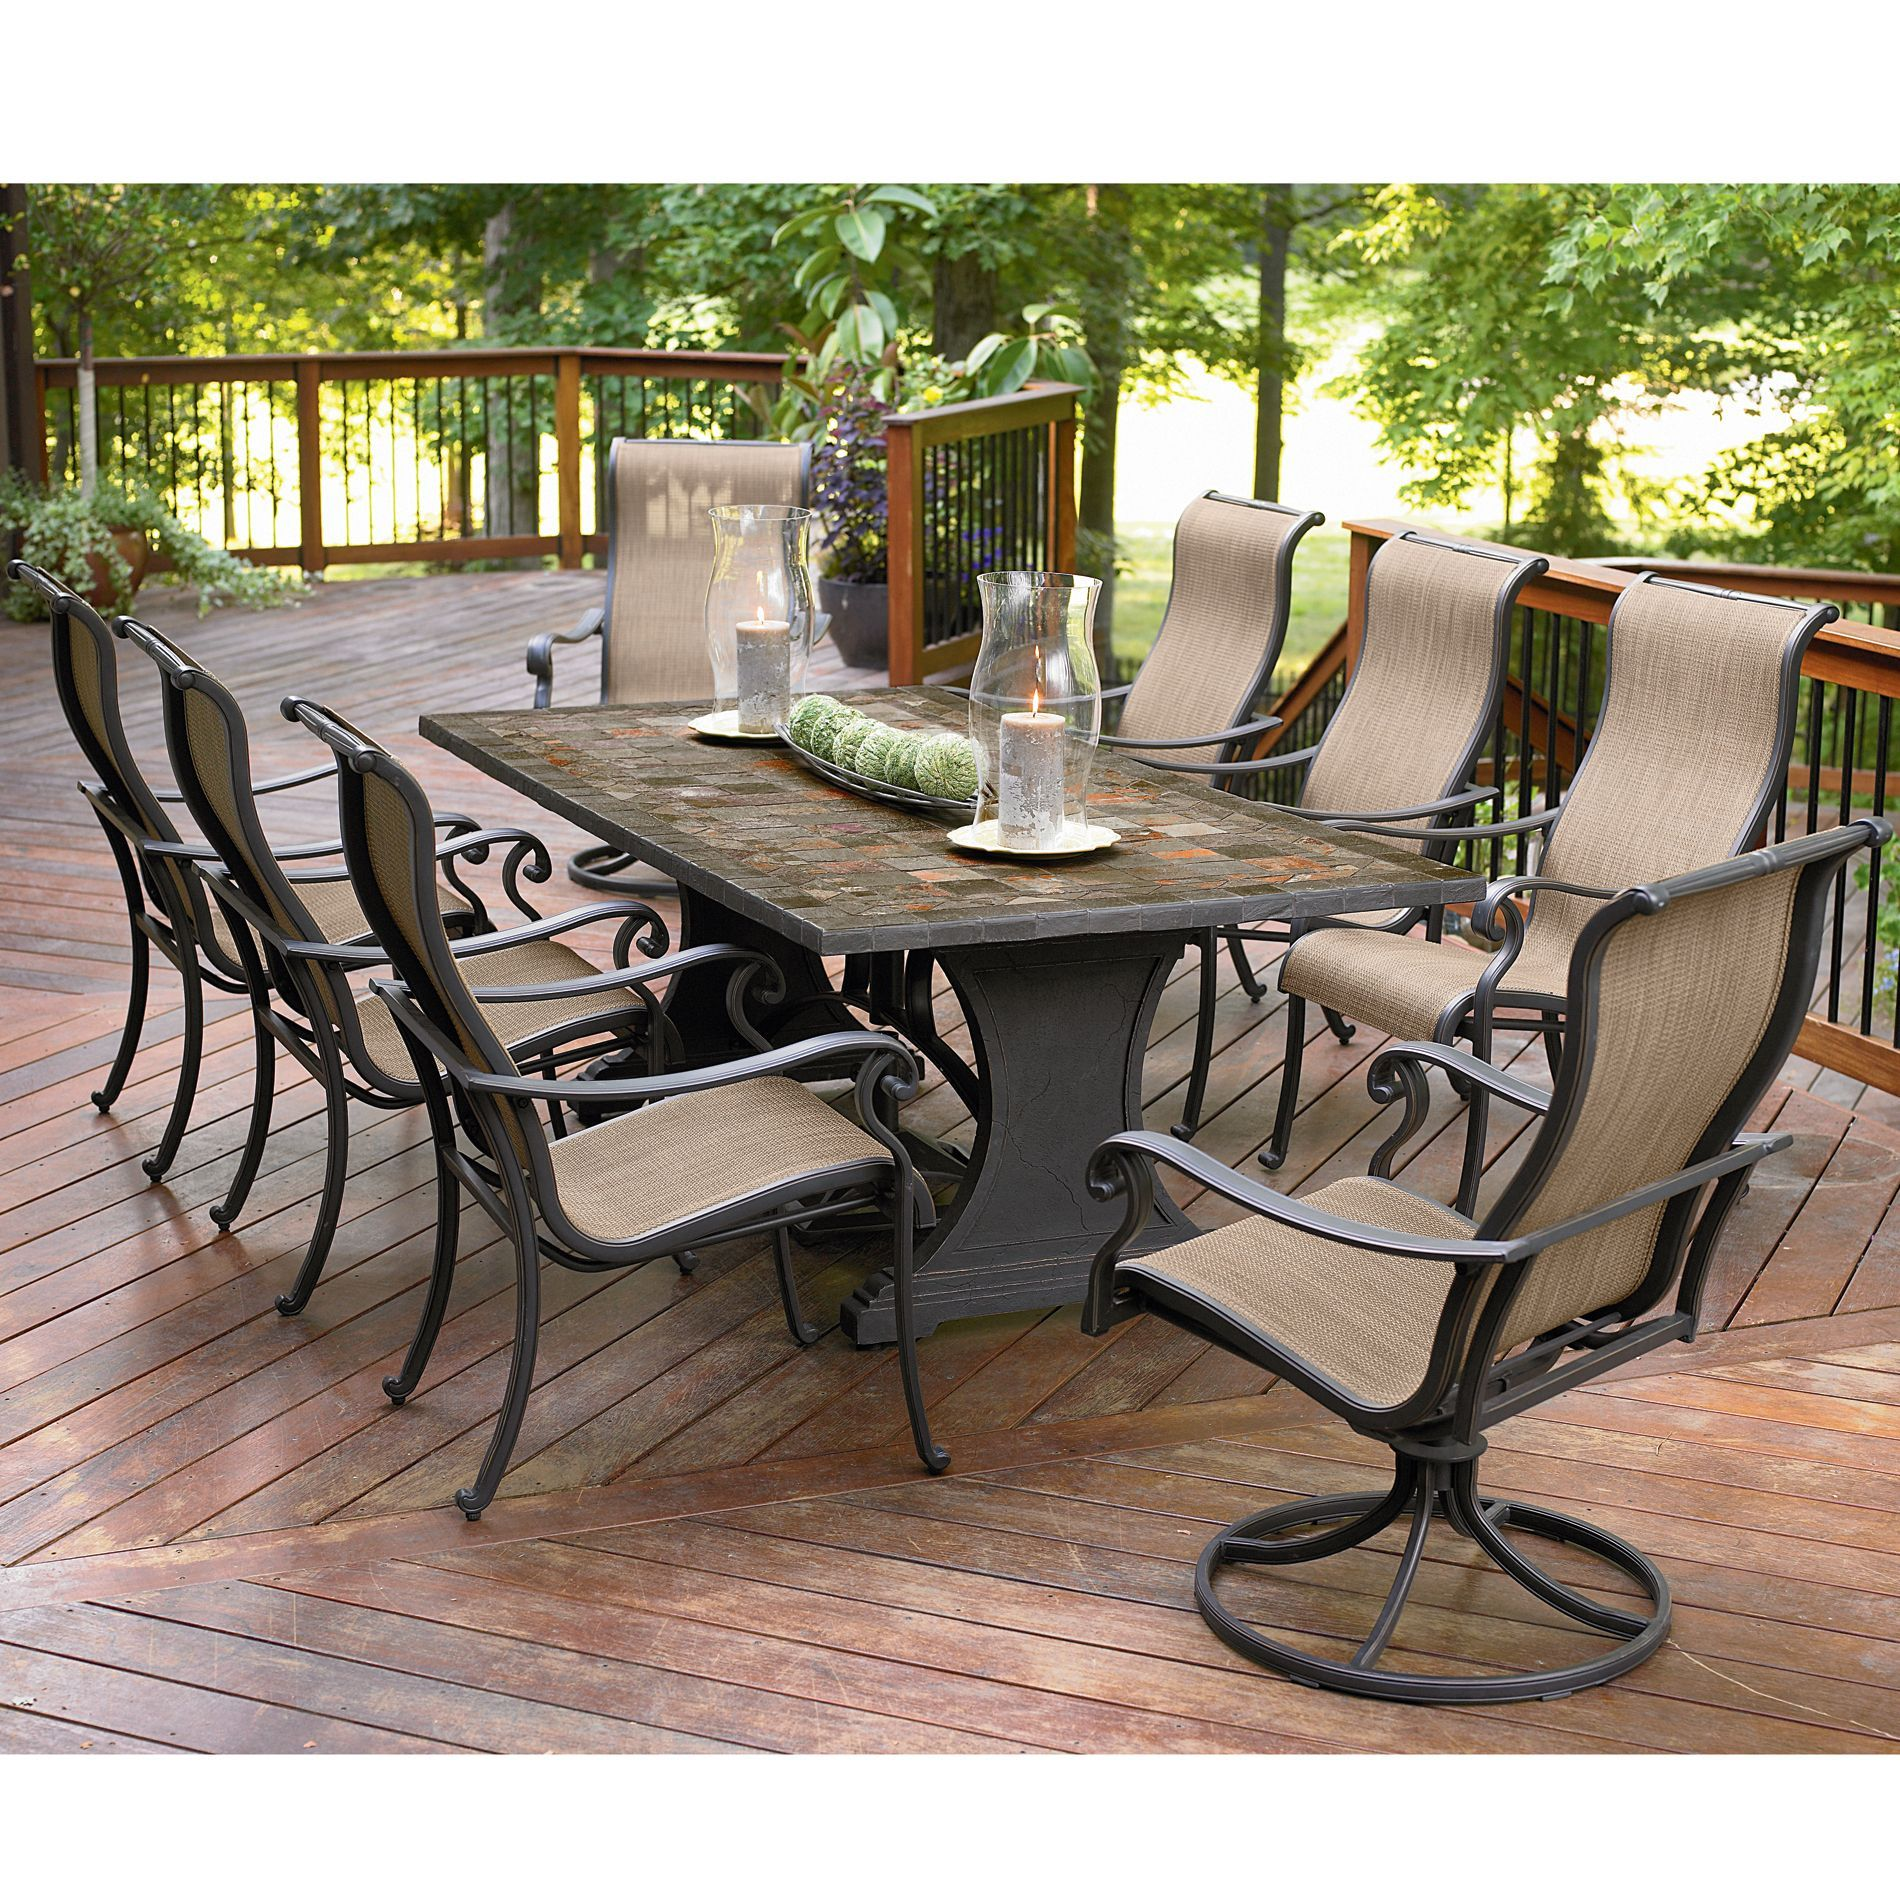 Agio Outdoor Patio Furniture Best Furniture Gallery Check more